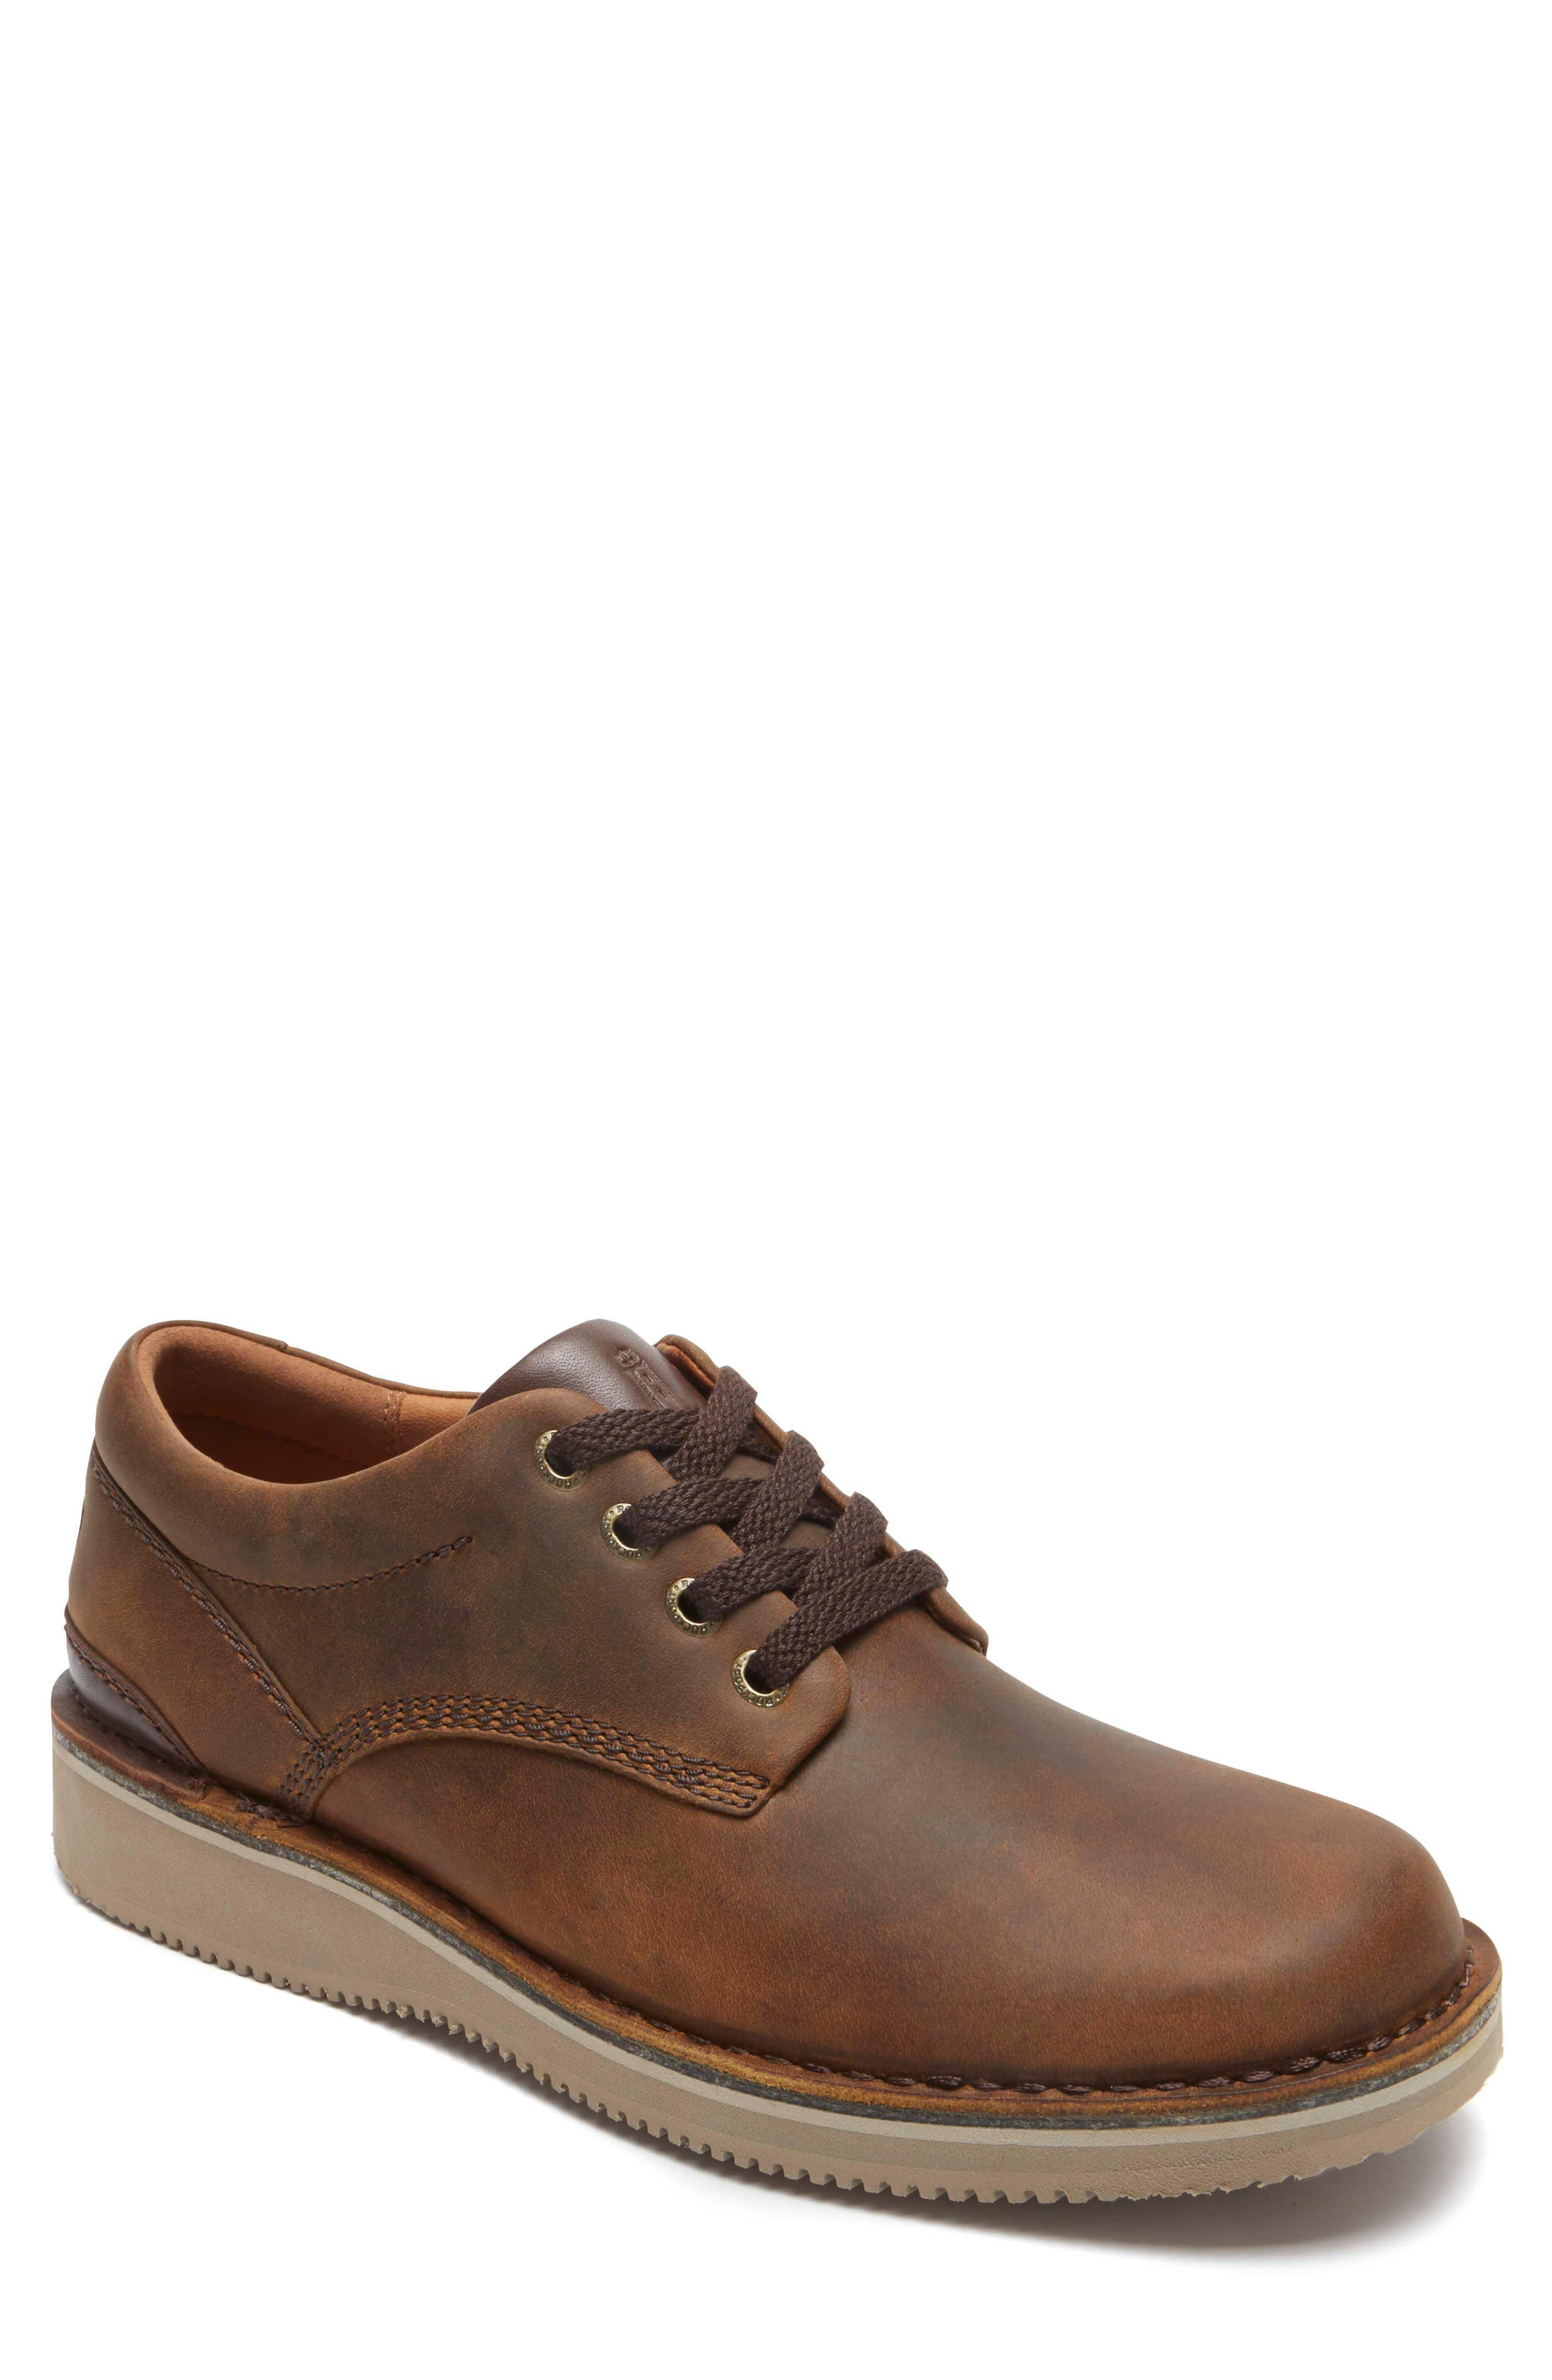 'Prestige Point' Plain Toe Derby,                         Main,                         color, Beeswax Leather